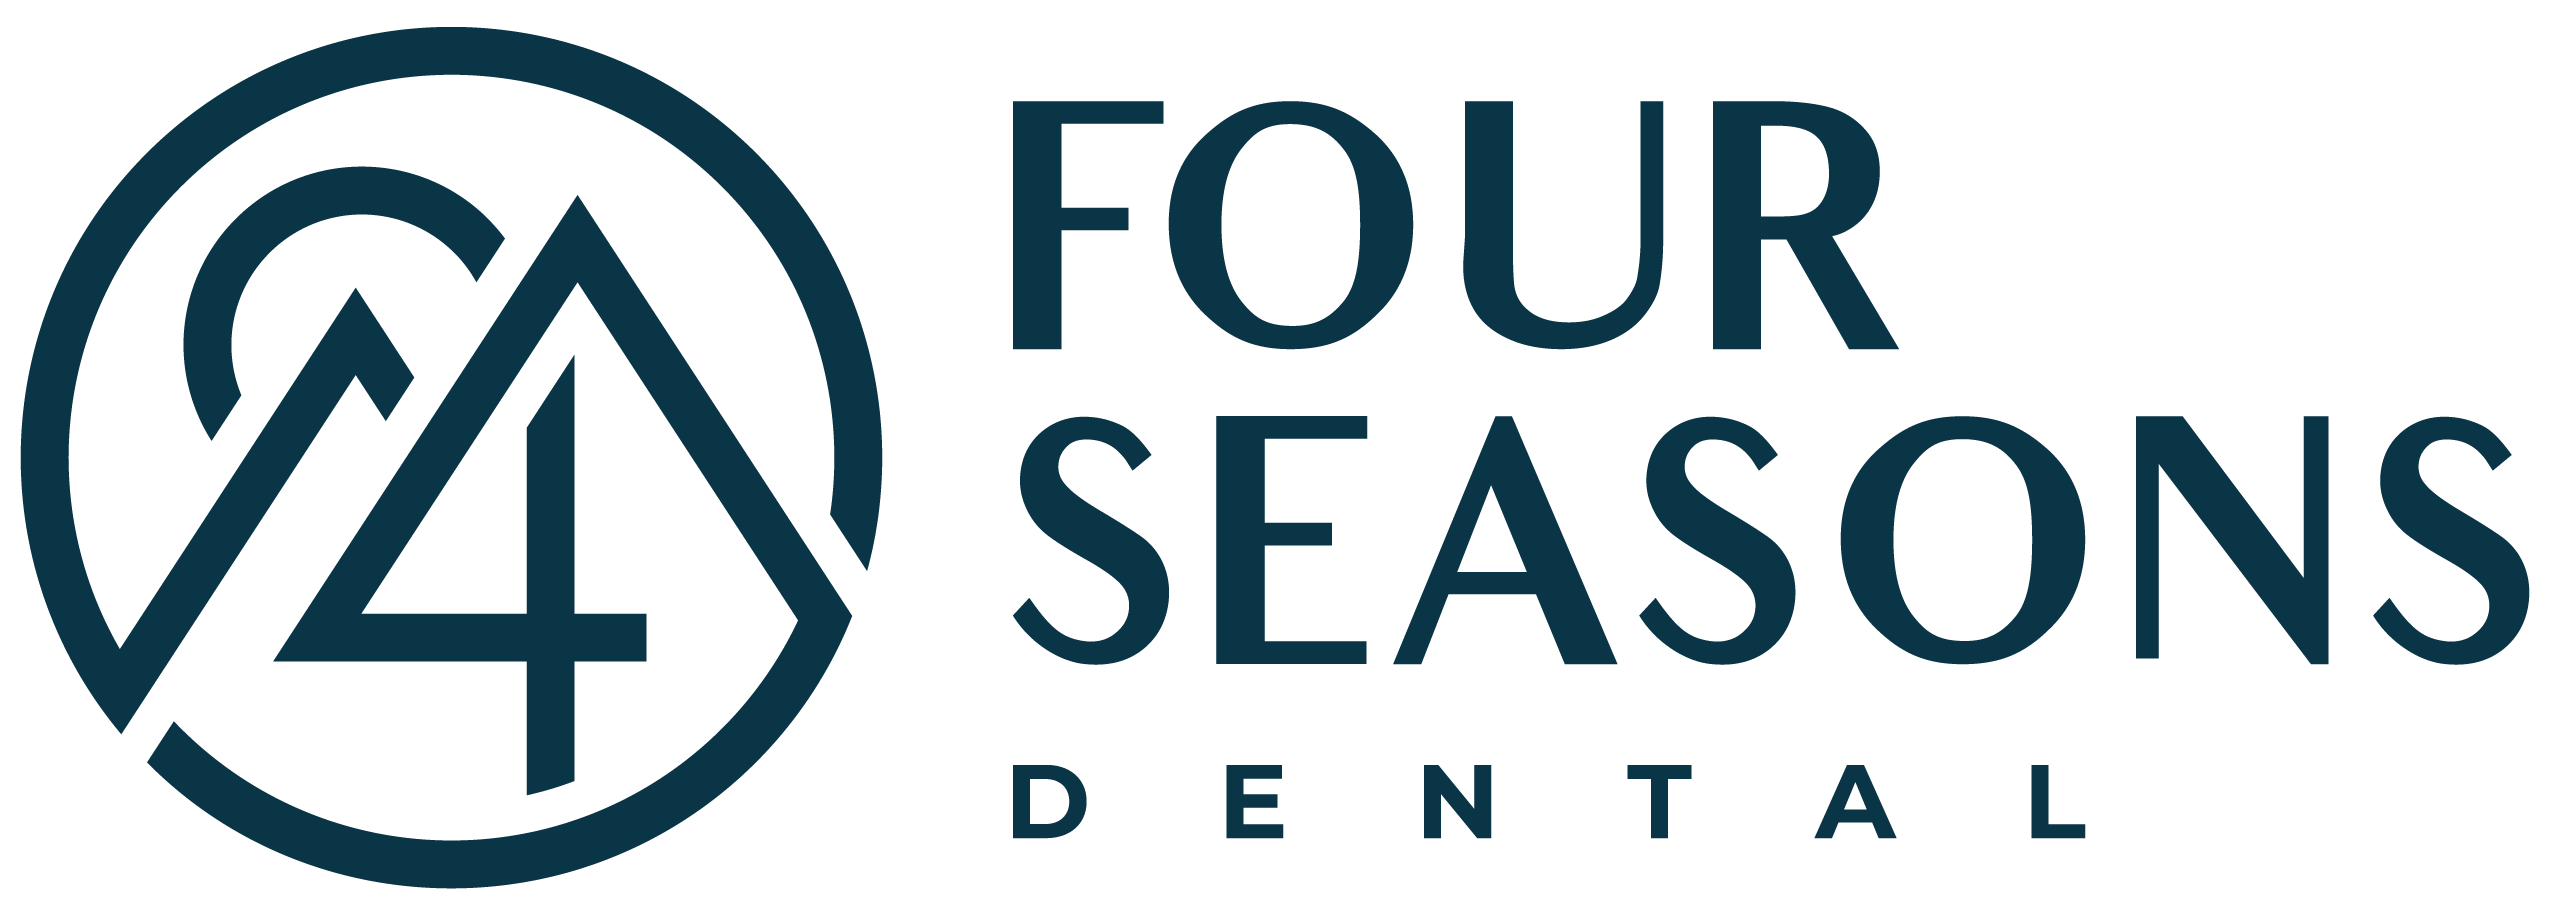 FOUR SEASONS DENTAL